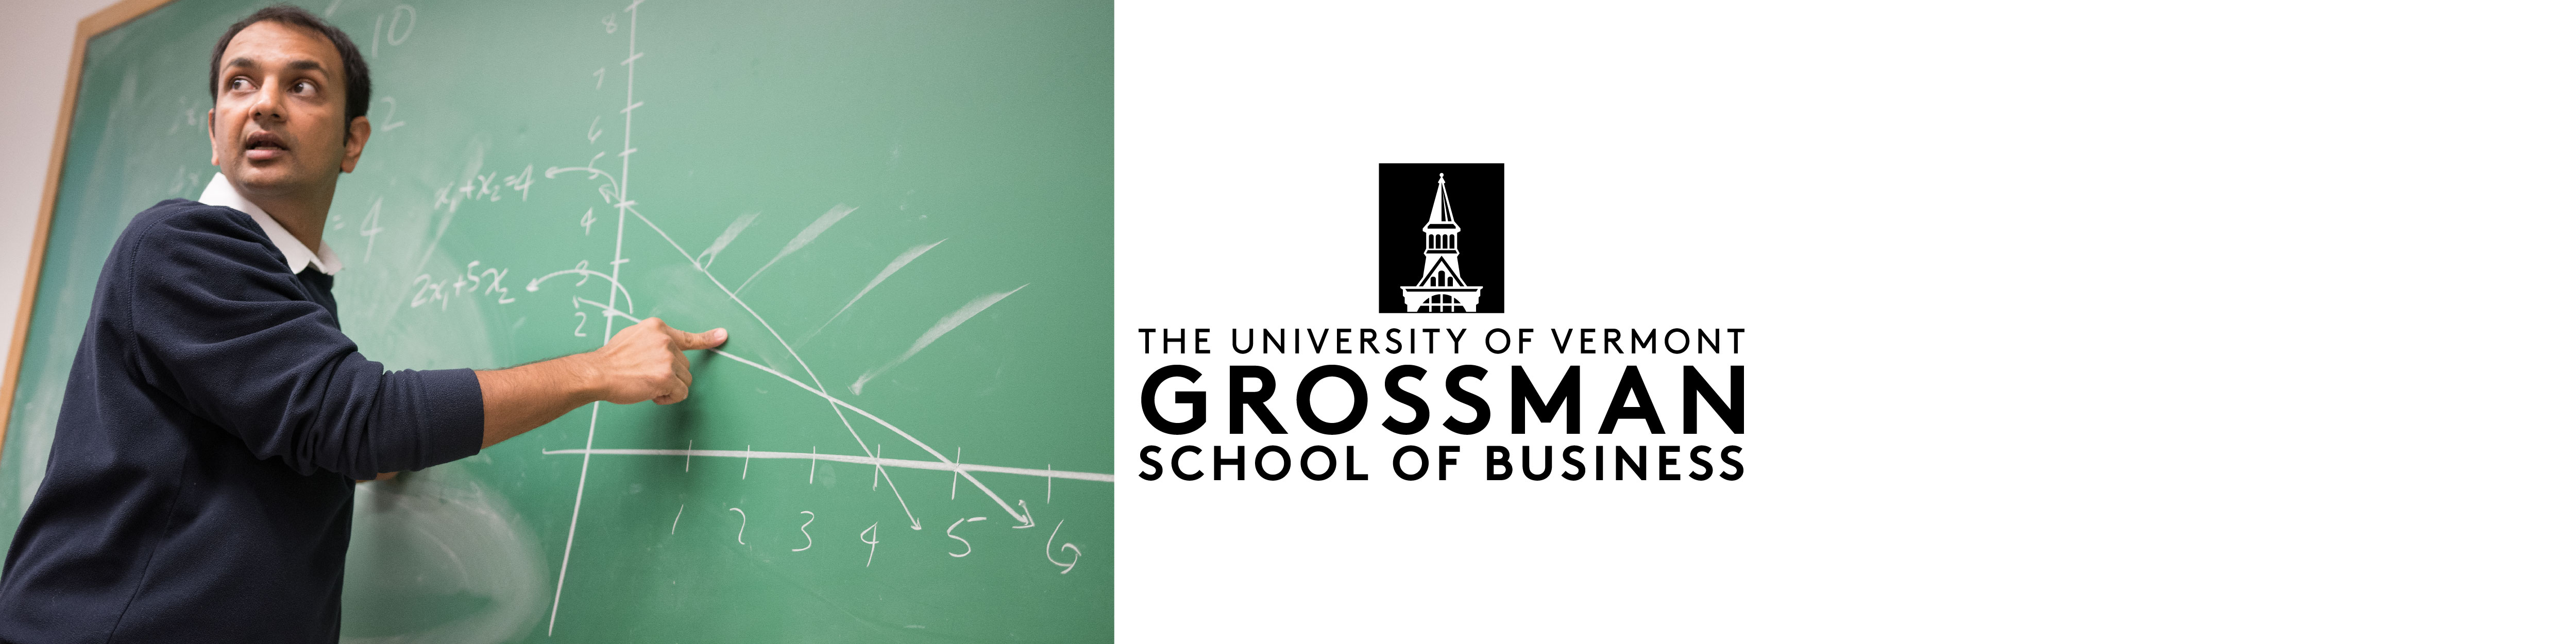 uvm, grossman school of business, Grossman Asst. Professor and UVM Kroepsch-Maurice Excellence in Teaching Award Winner Akshay Mutha